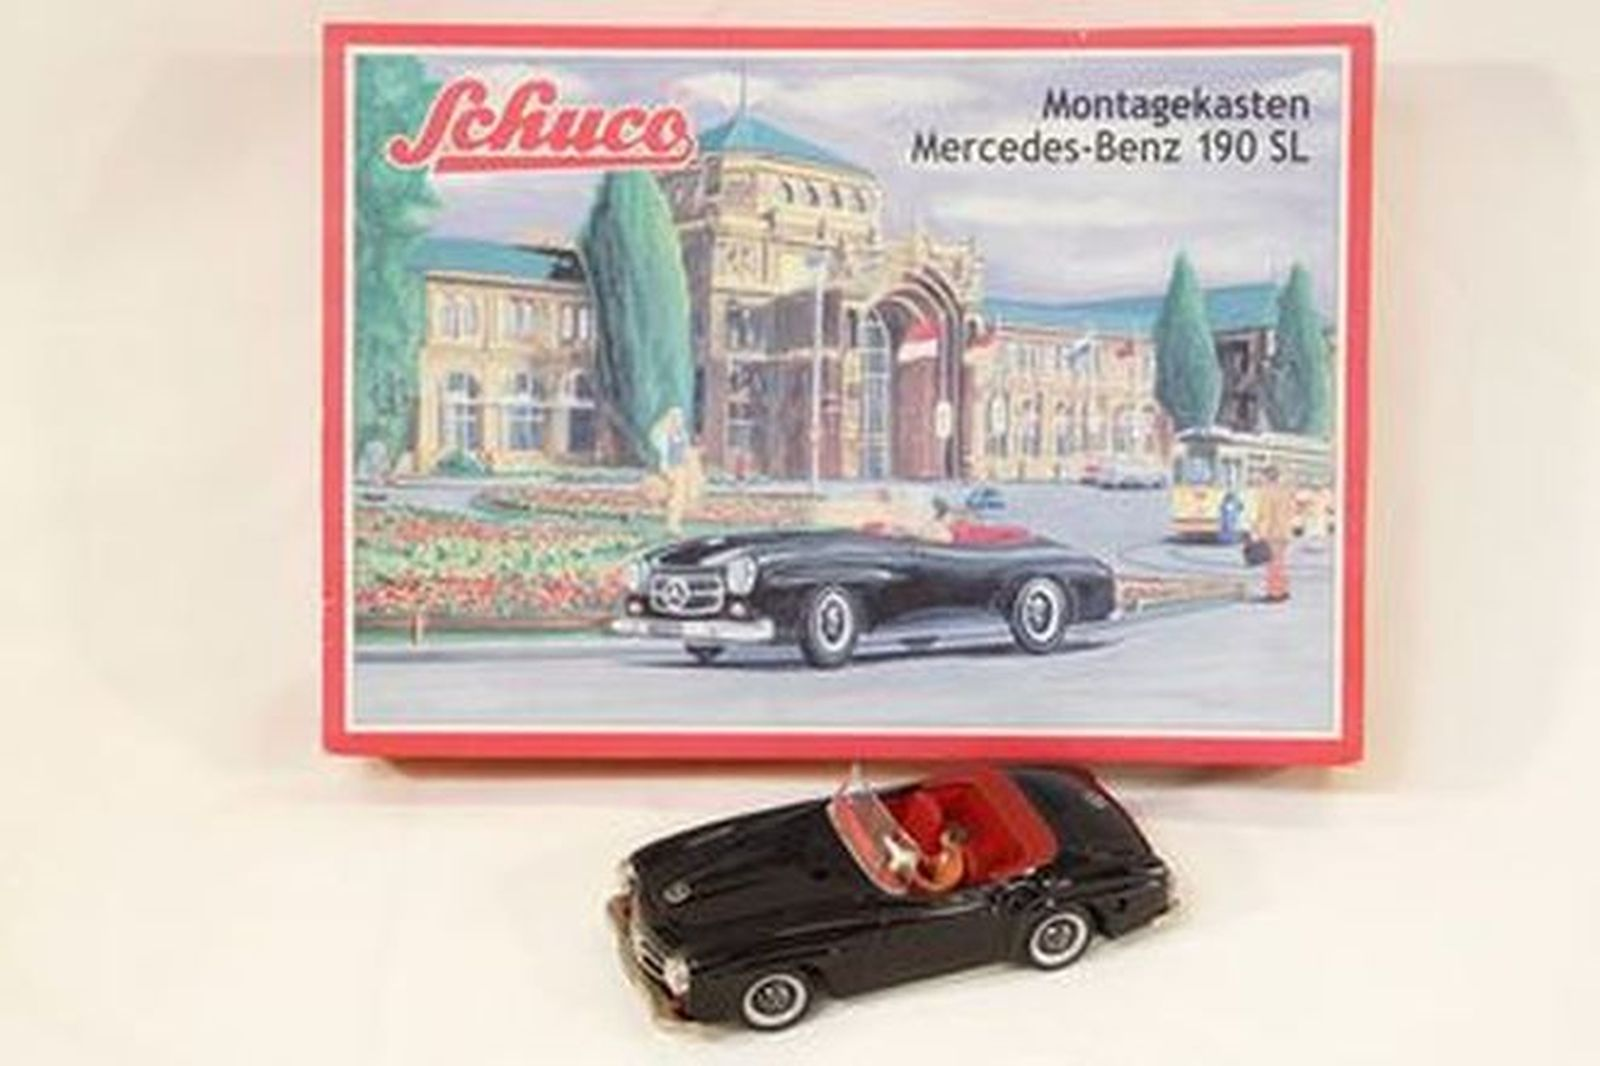 Schuco Montagekasten Mercedes-Benz 190SL (no.2097) wind-up with box and accessories